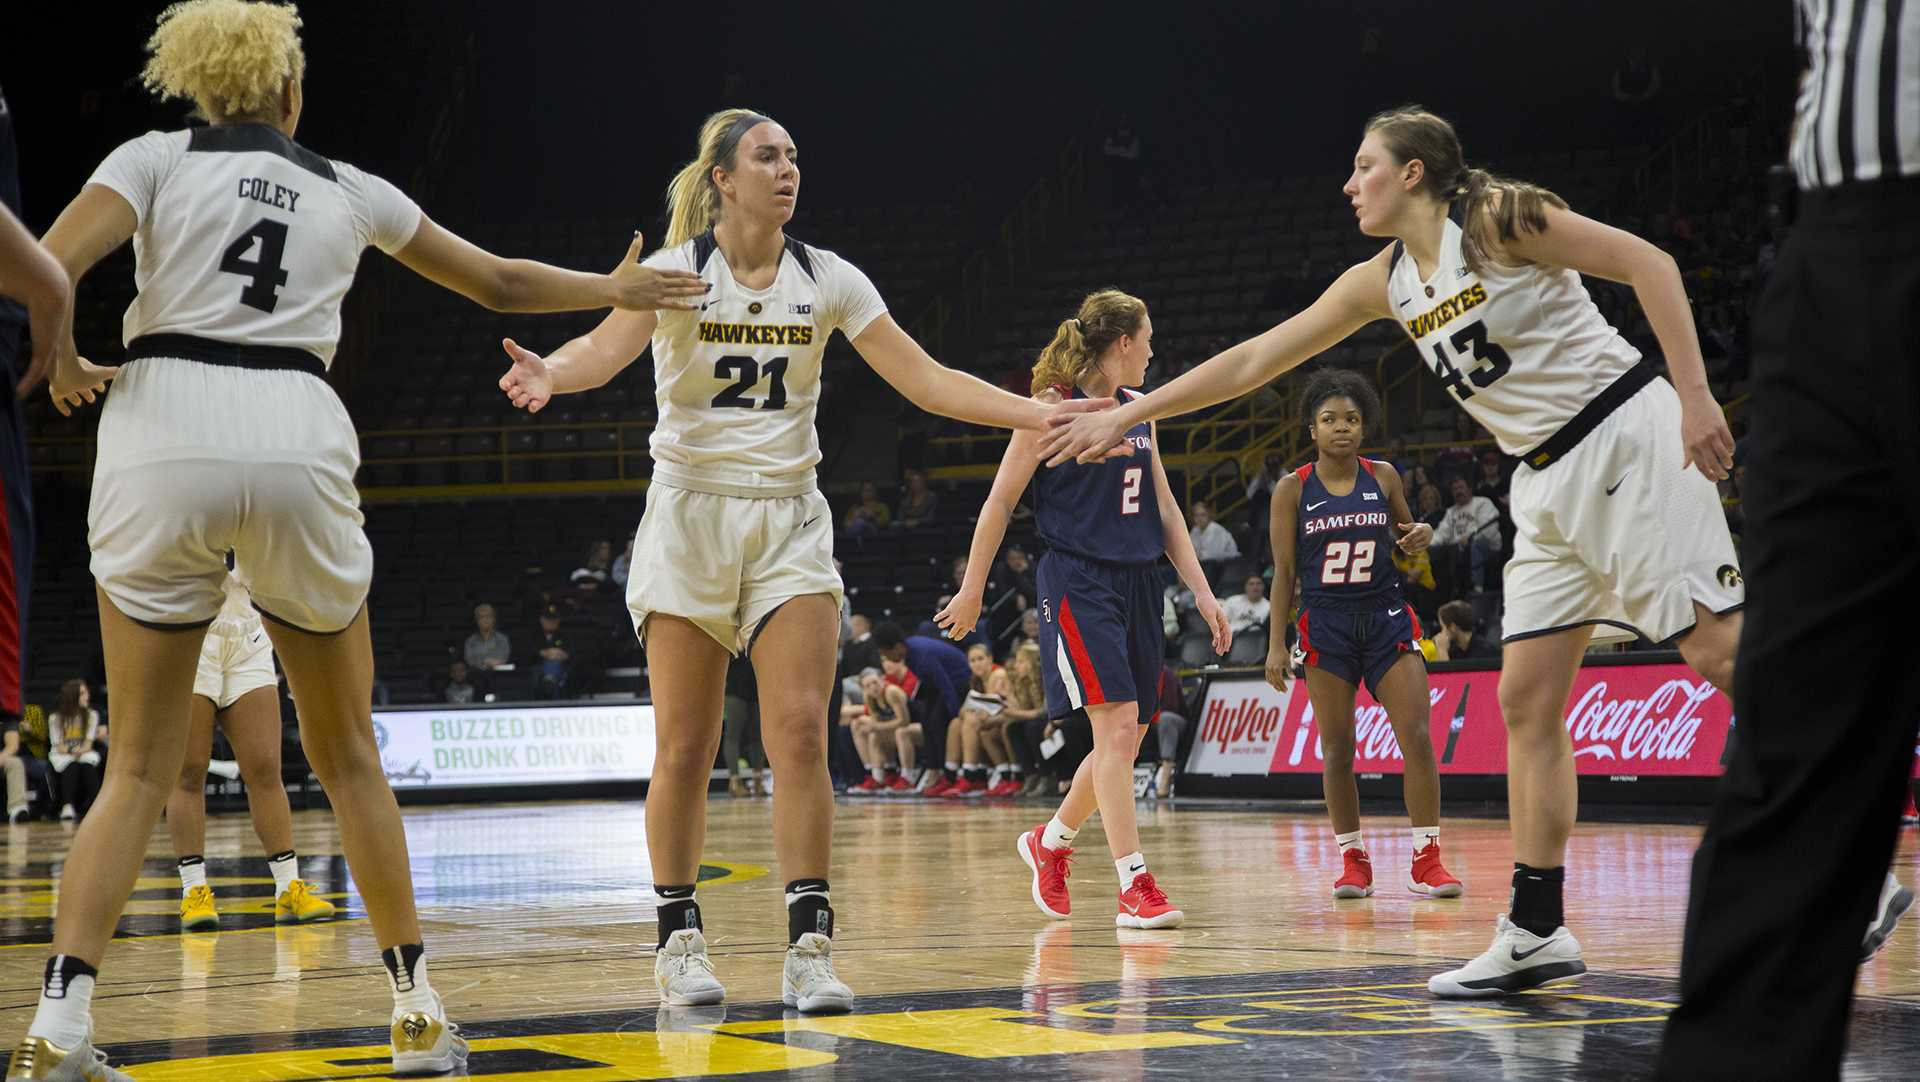 Iowa forward Hannah Stewart high fives forward Chase Coley and forward Amanda Ollinger during the Iowa/Samford basketball game at Carver-Hawkeye Arena on Sunday, Dec. 3, 2017. The Hawkeyes defeated the Bulldogs, 80-59. (Lily Smith/The Daily Iowan)